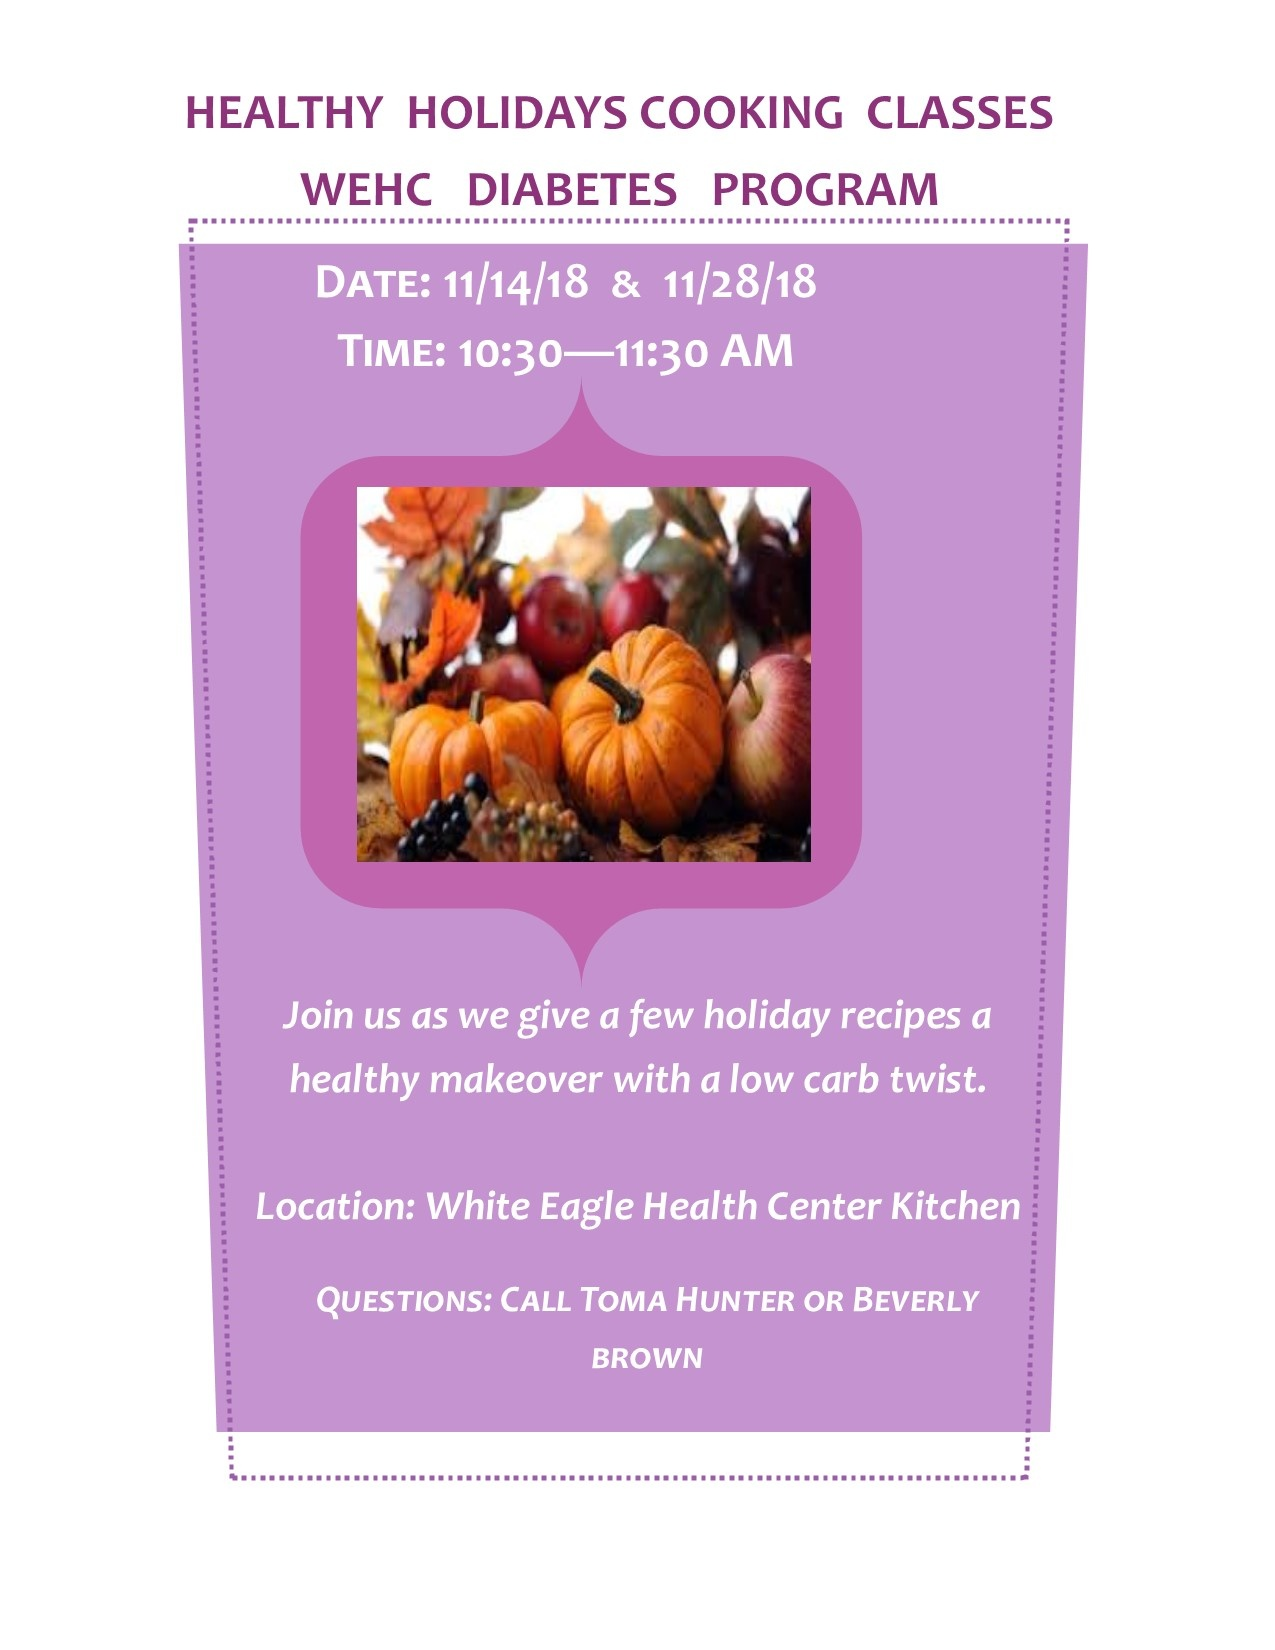 Come enjoy cooking class with the Diabetes Program!